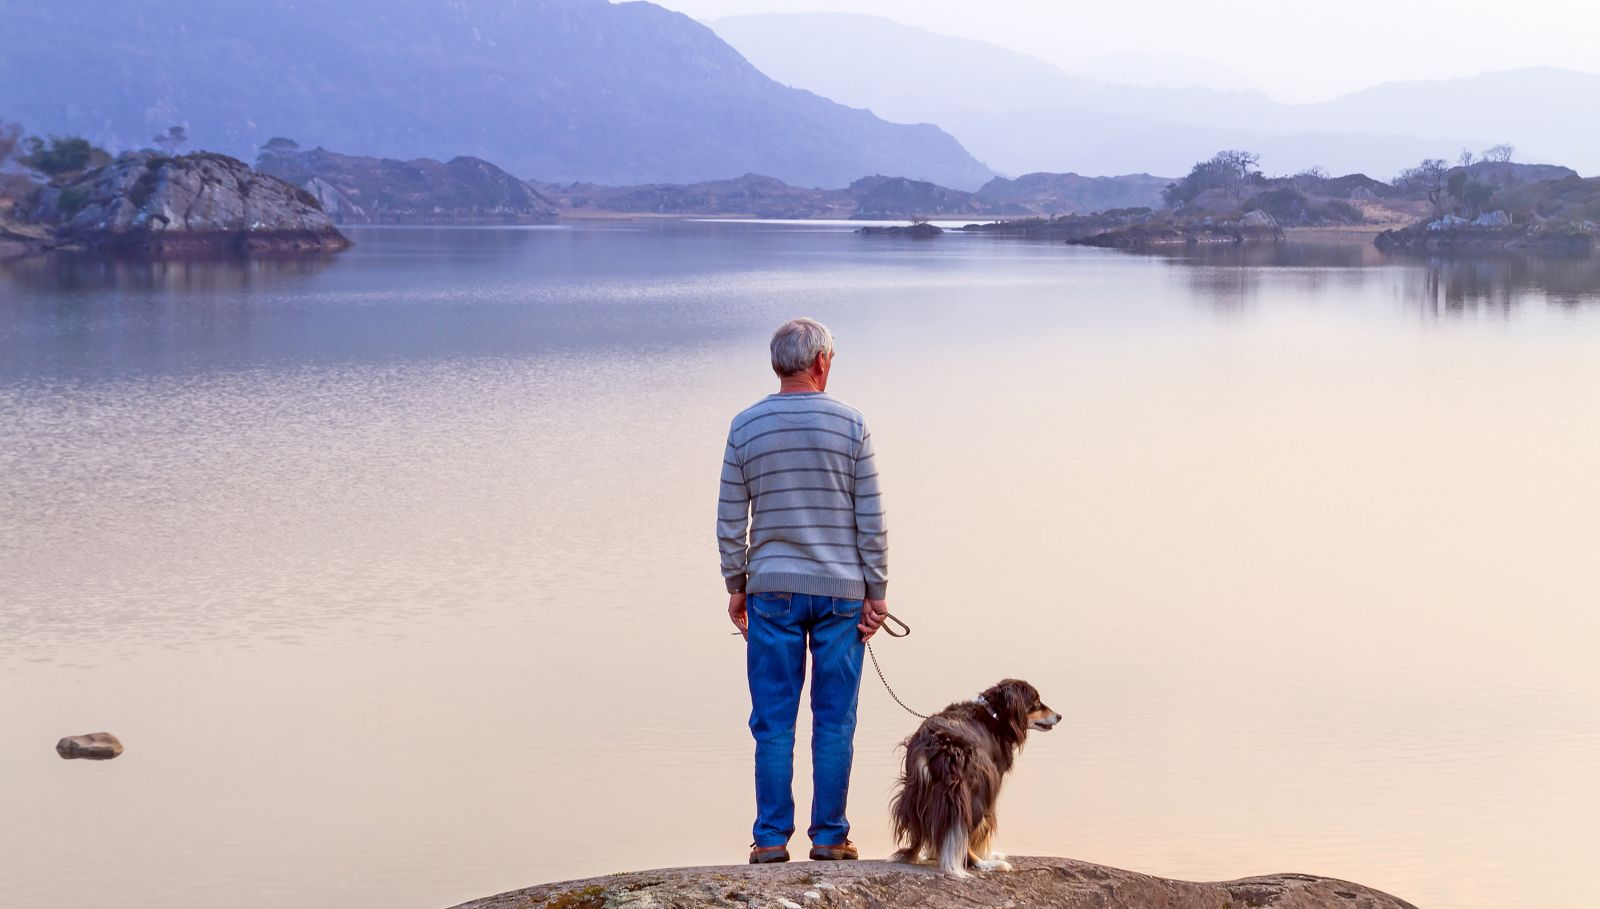 Retirement blues: Taking it too easy can be hard on you